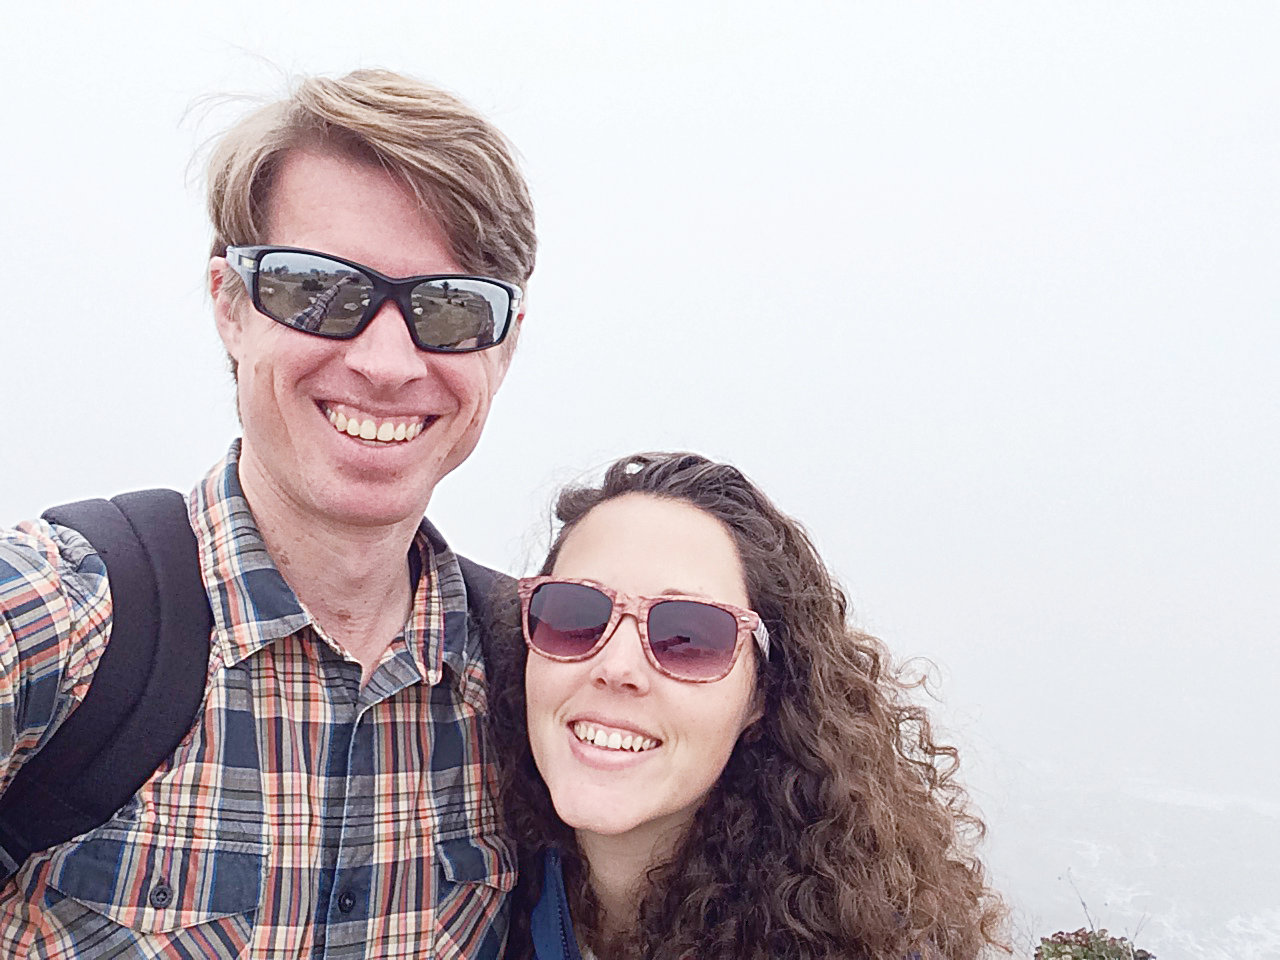 Shannon Culpepper and Scott Fister on a trip to California in 2018. The two were engaged last November.